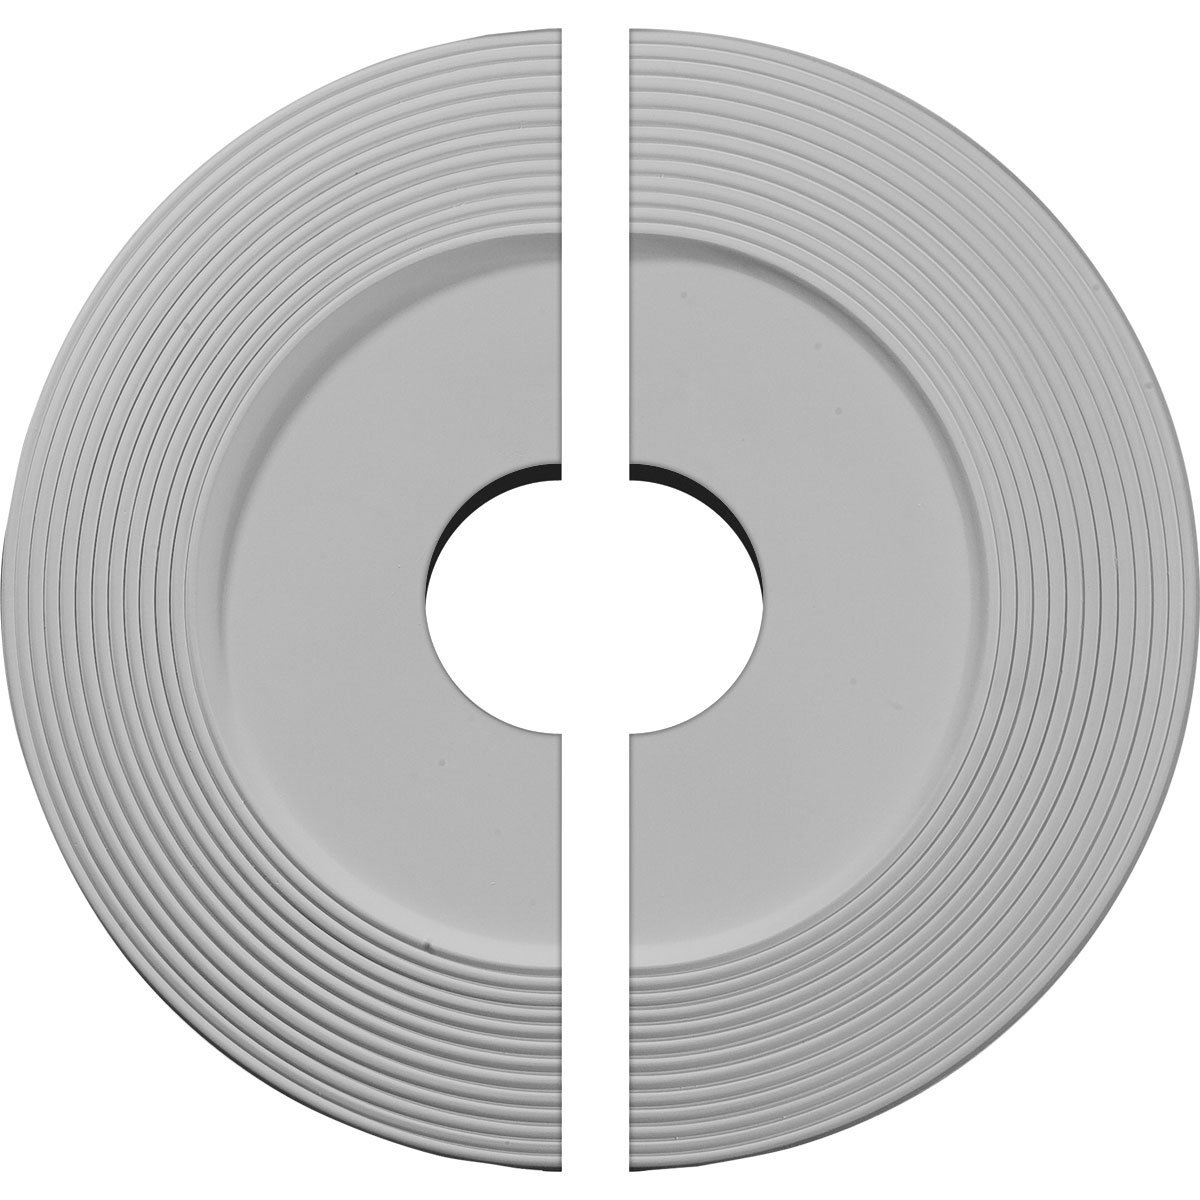 Ekena Millwork CM16AD2 16 1/8''OD x 3 5/8''ID x 1''P Adonis Ceiling Medallion, Two Piece (Fits Canopies up to 10 1/4''), Factory Primed and Ready to Paint